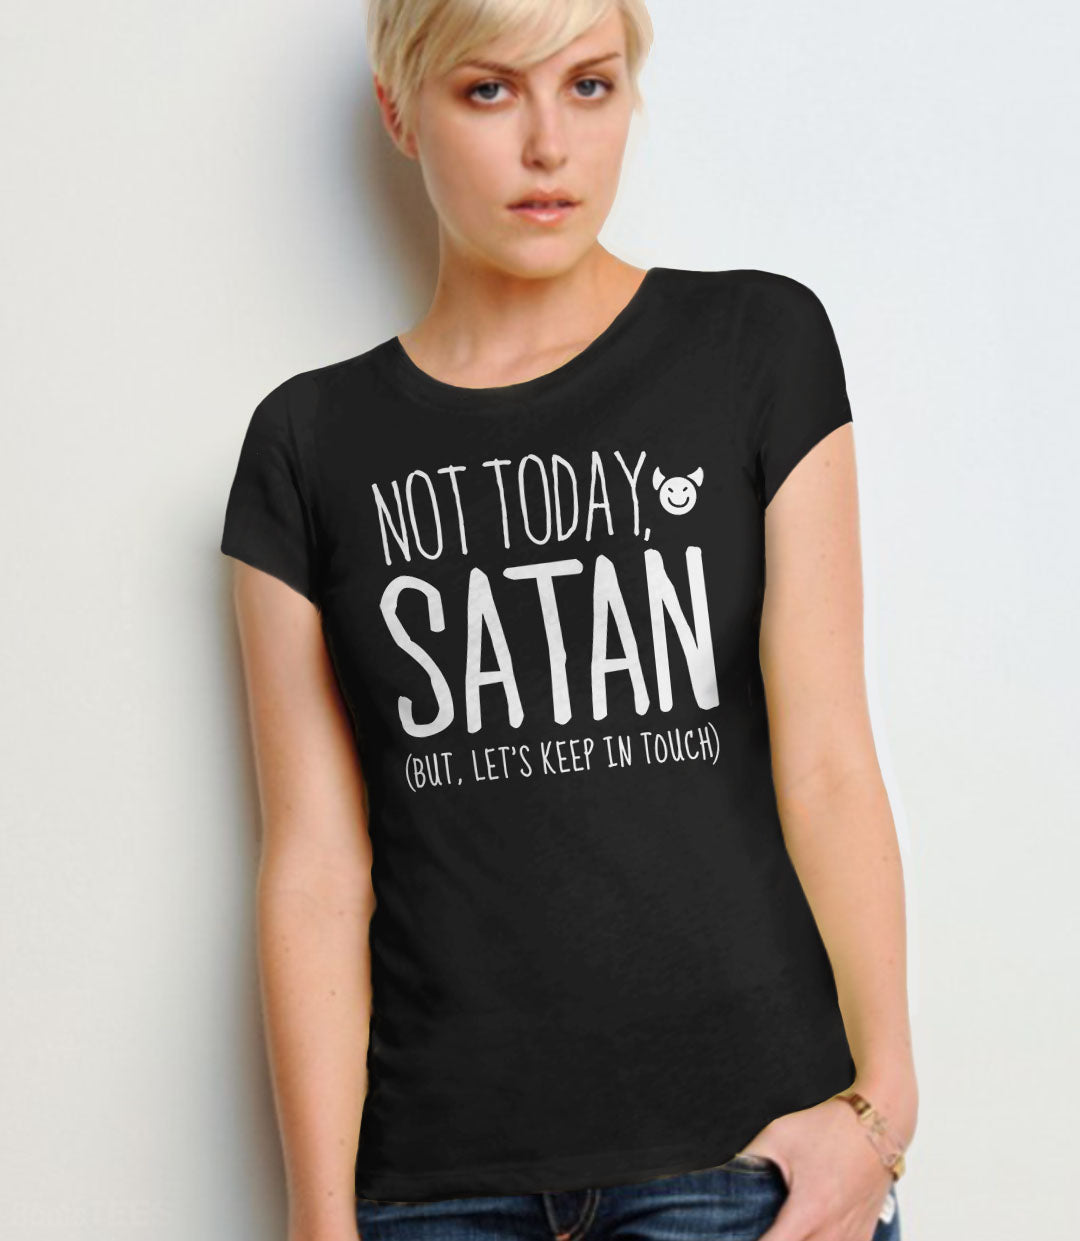 Cute Sarcastic T-Shirt, Not Today Satan But Let's Keep in Touch - black womens tee